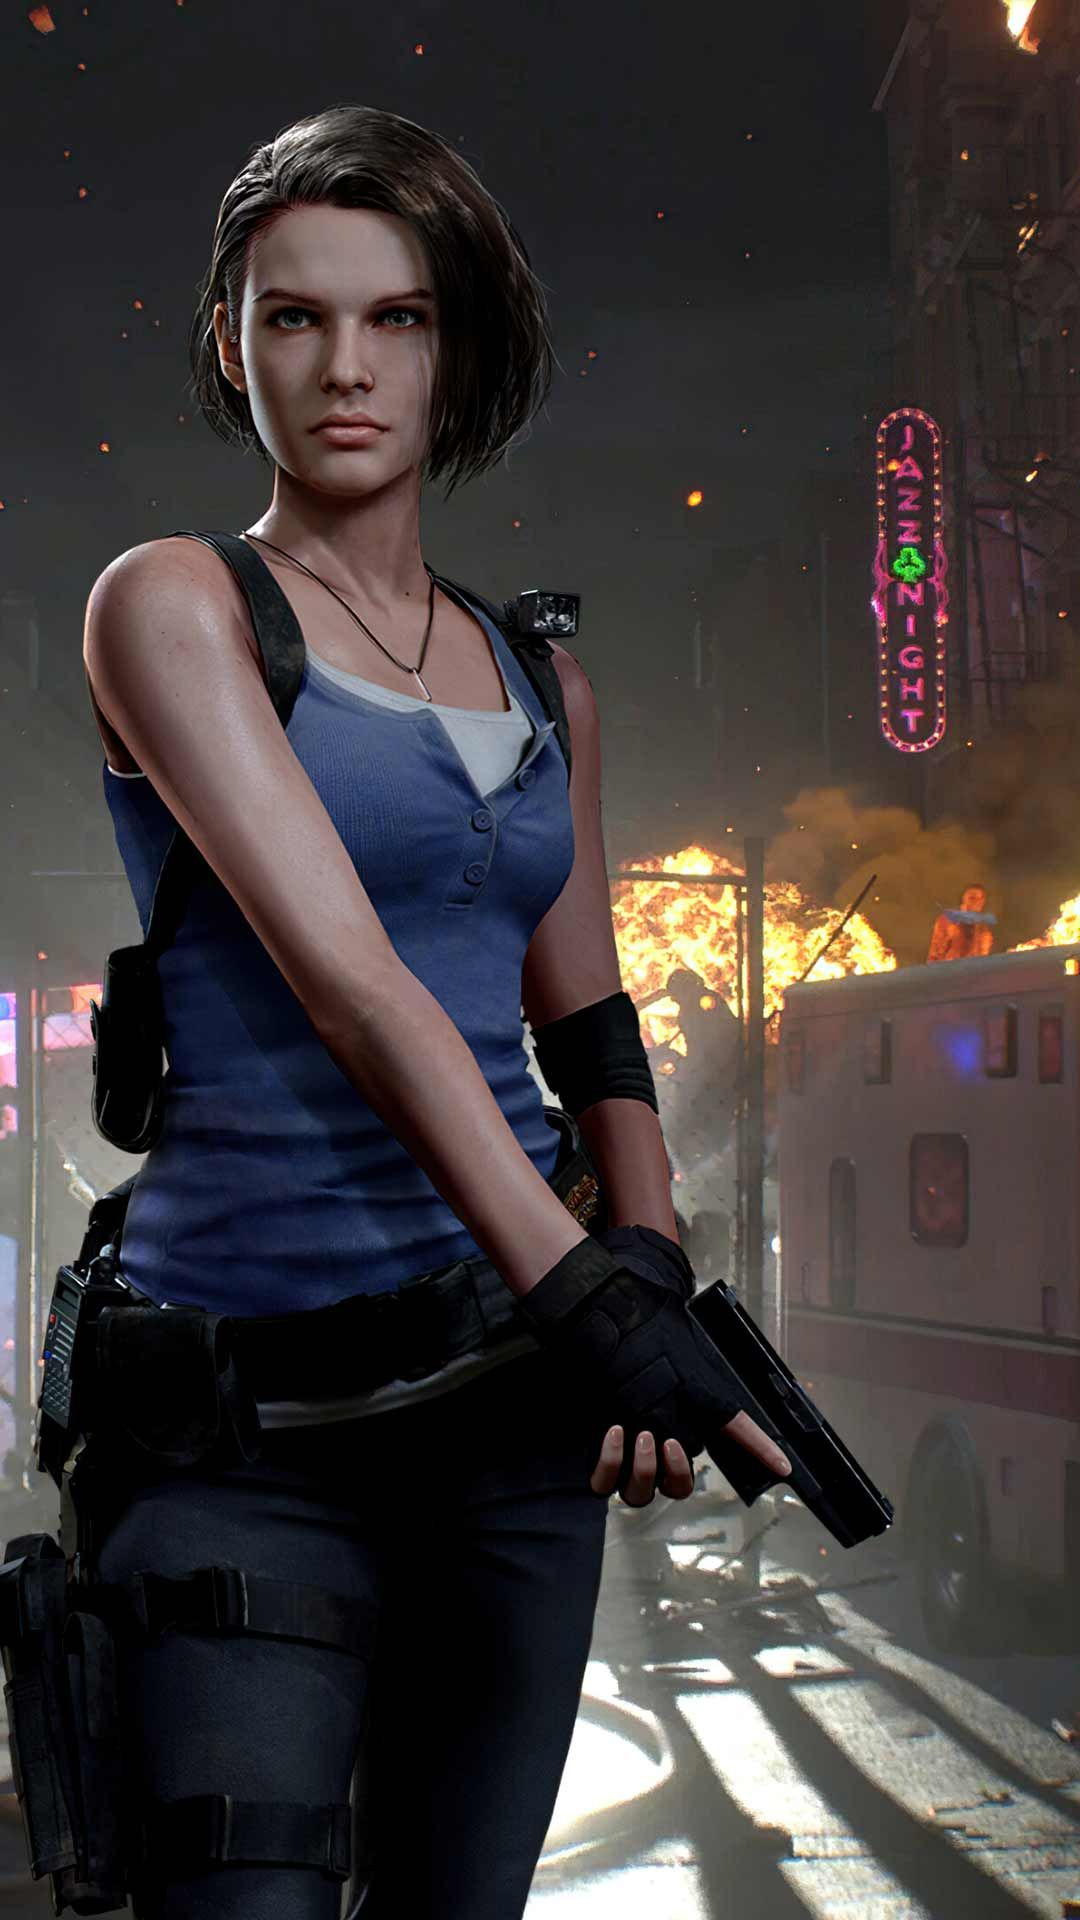 Jill Valentine Re3 Remake Wallpaper Hd Phone Backgrounds 2020 Game Art Poster On Iphone Android In 2020 Jill Valentine Resident Evil 3 Remake Resident Evil